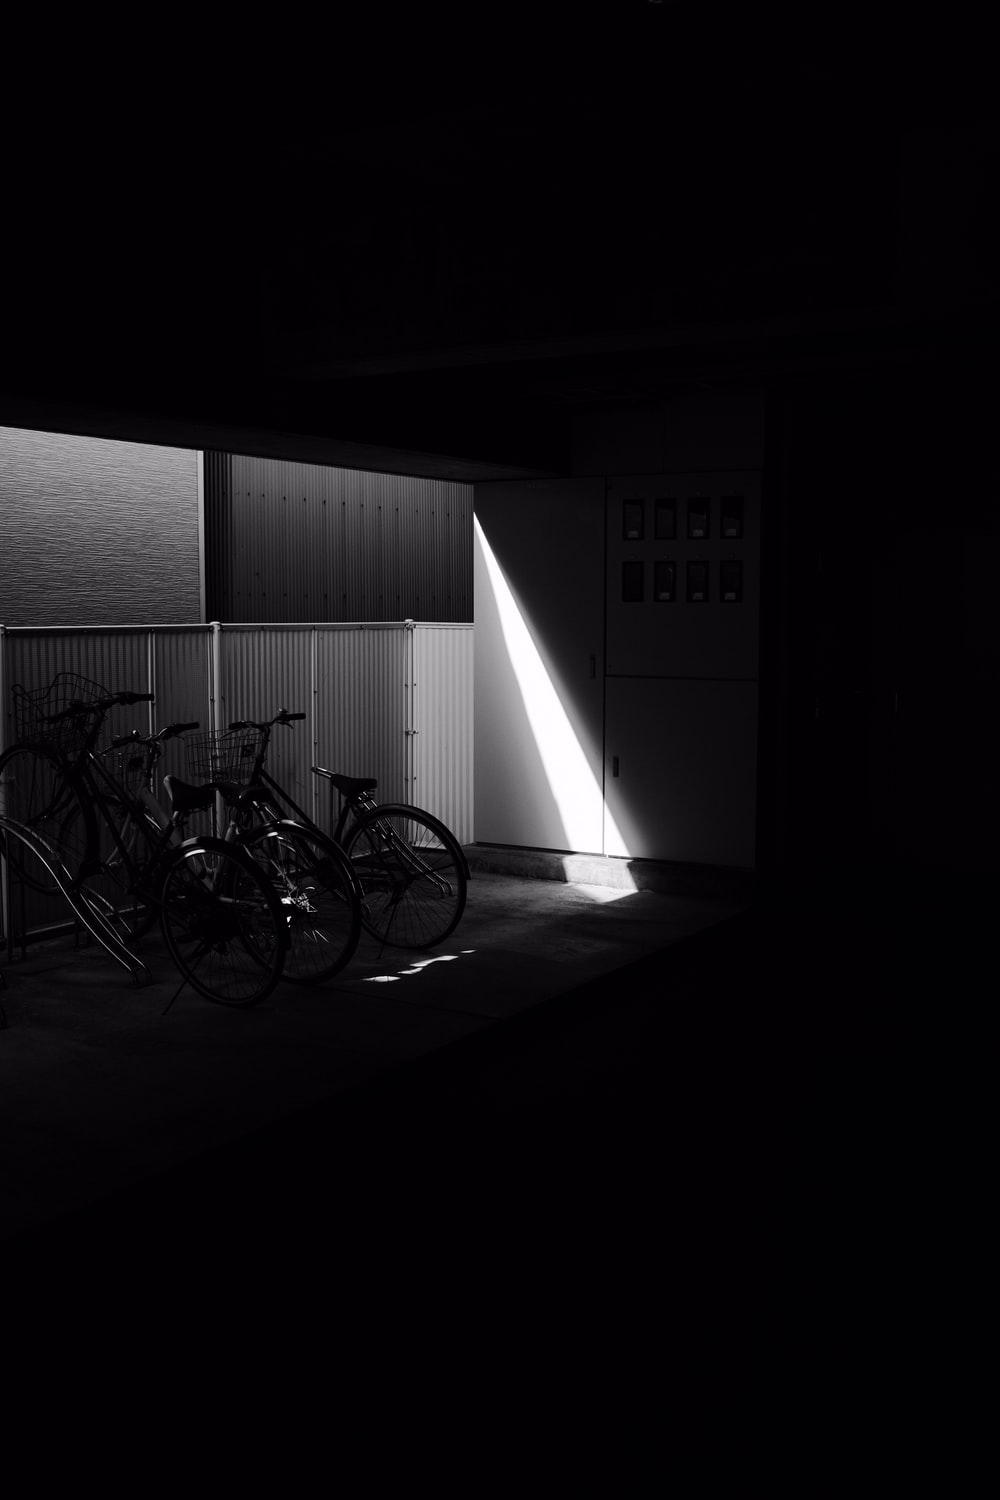 grayscale photo of bicycle in room